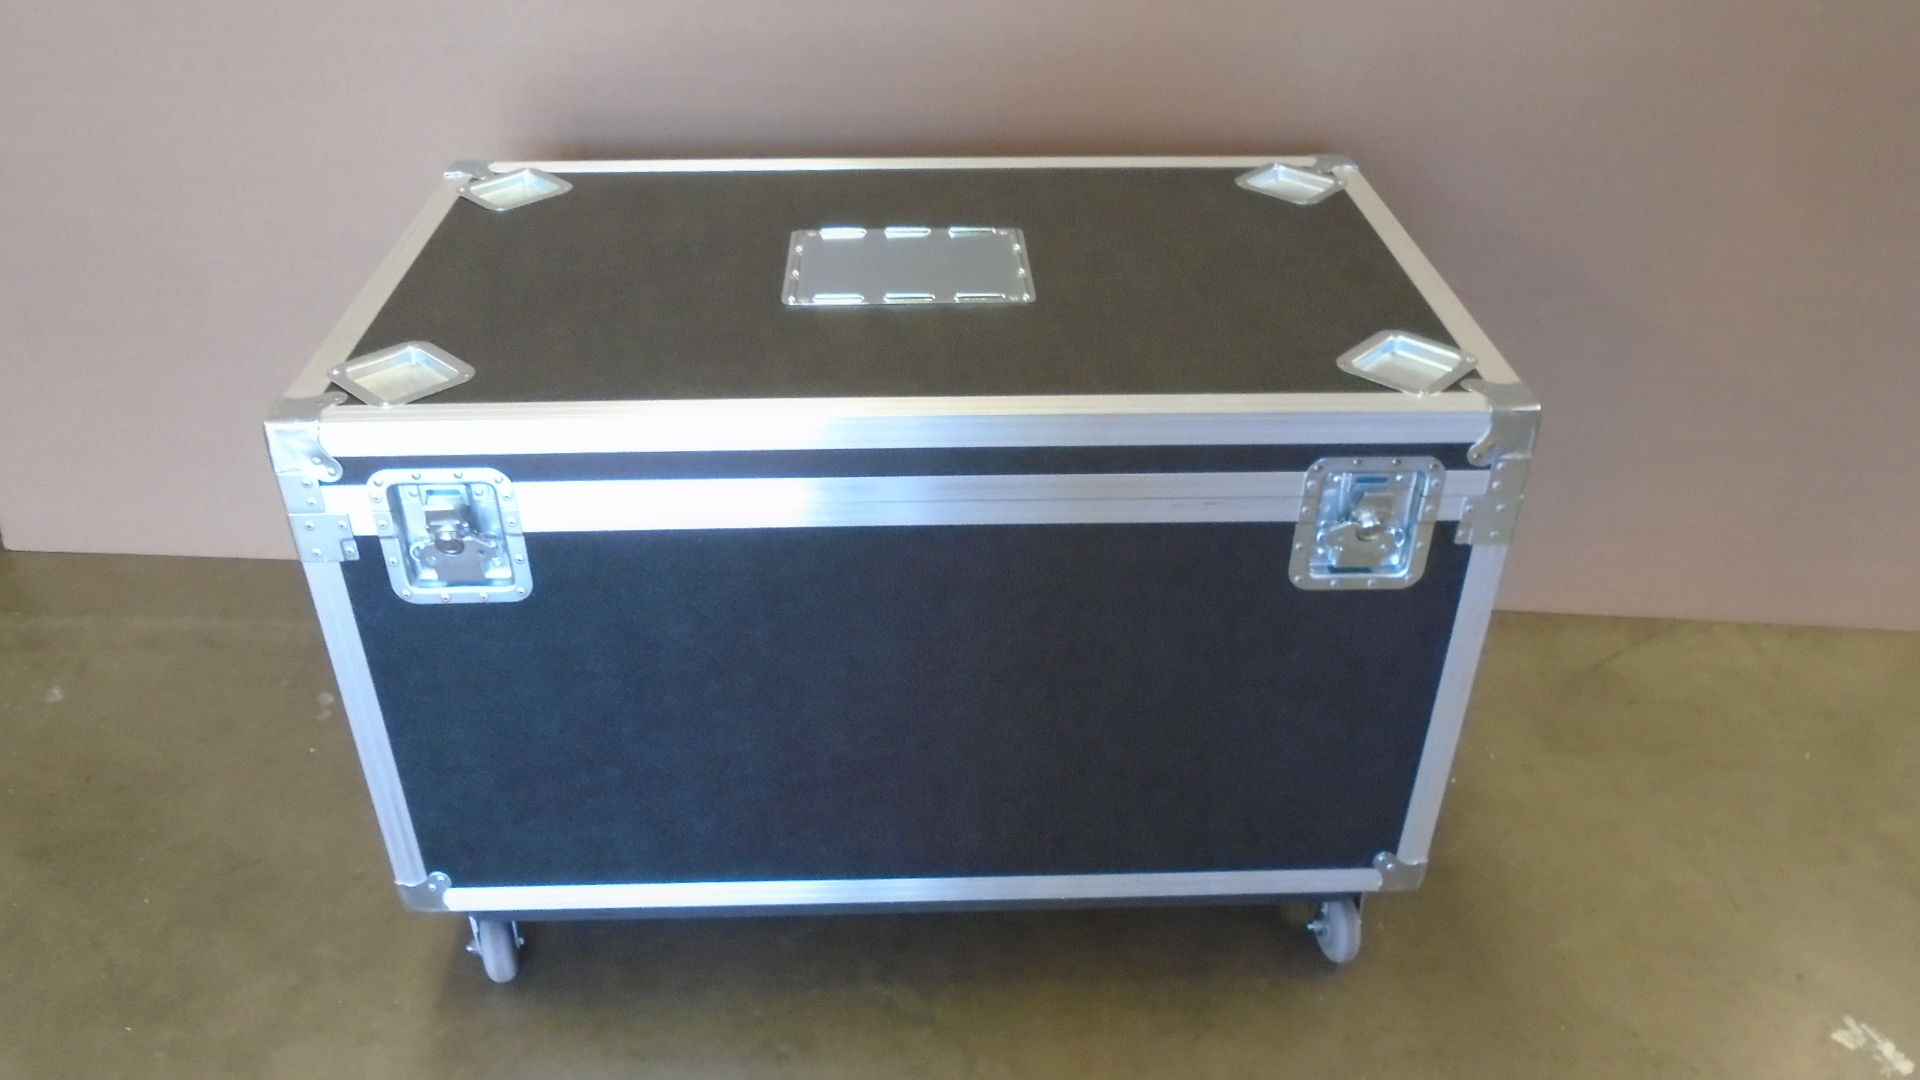 Print # 7724 - Custom Road Case for Edwards Lifescience Display Unit By Nelson Case Corp